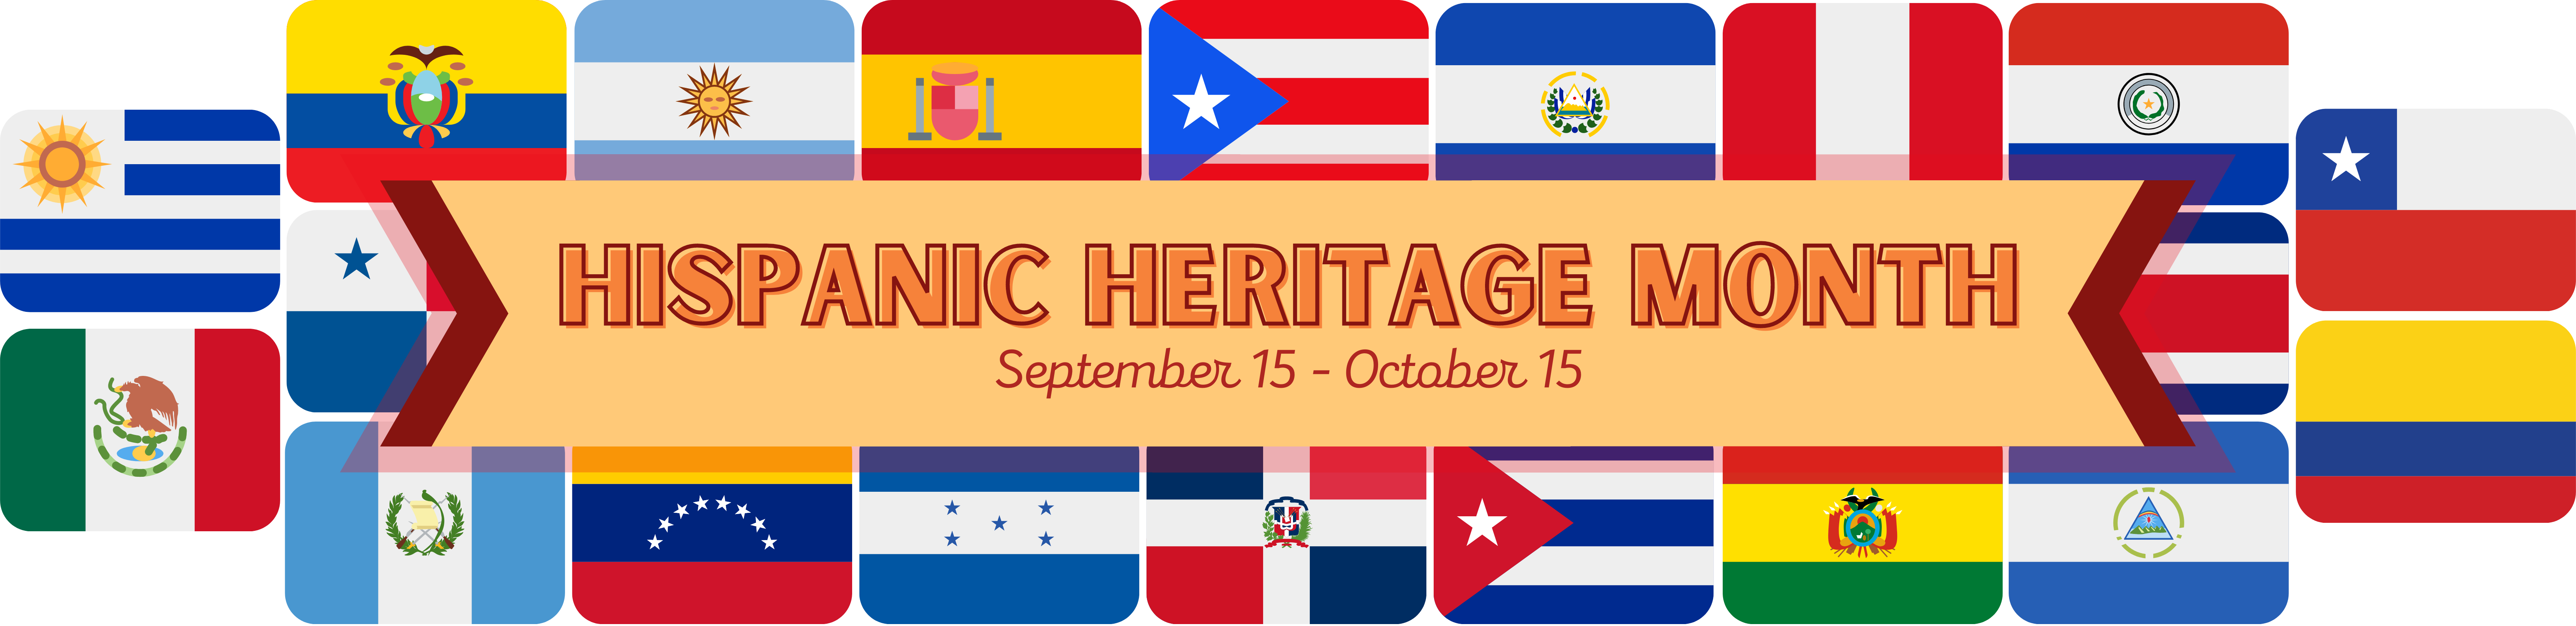 Banner of text surrounded by Spanish-speaking national flags. The banner reads: Hispanic Heritage Month, September 15 - October 15.